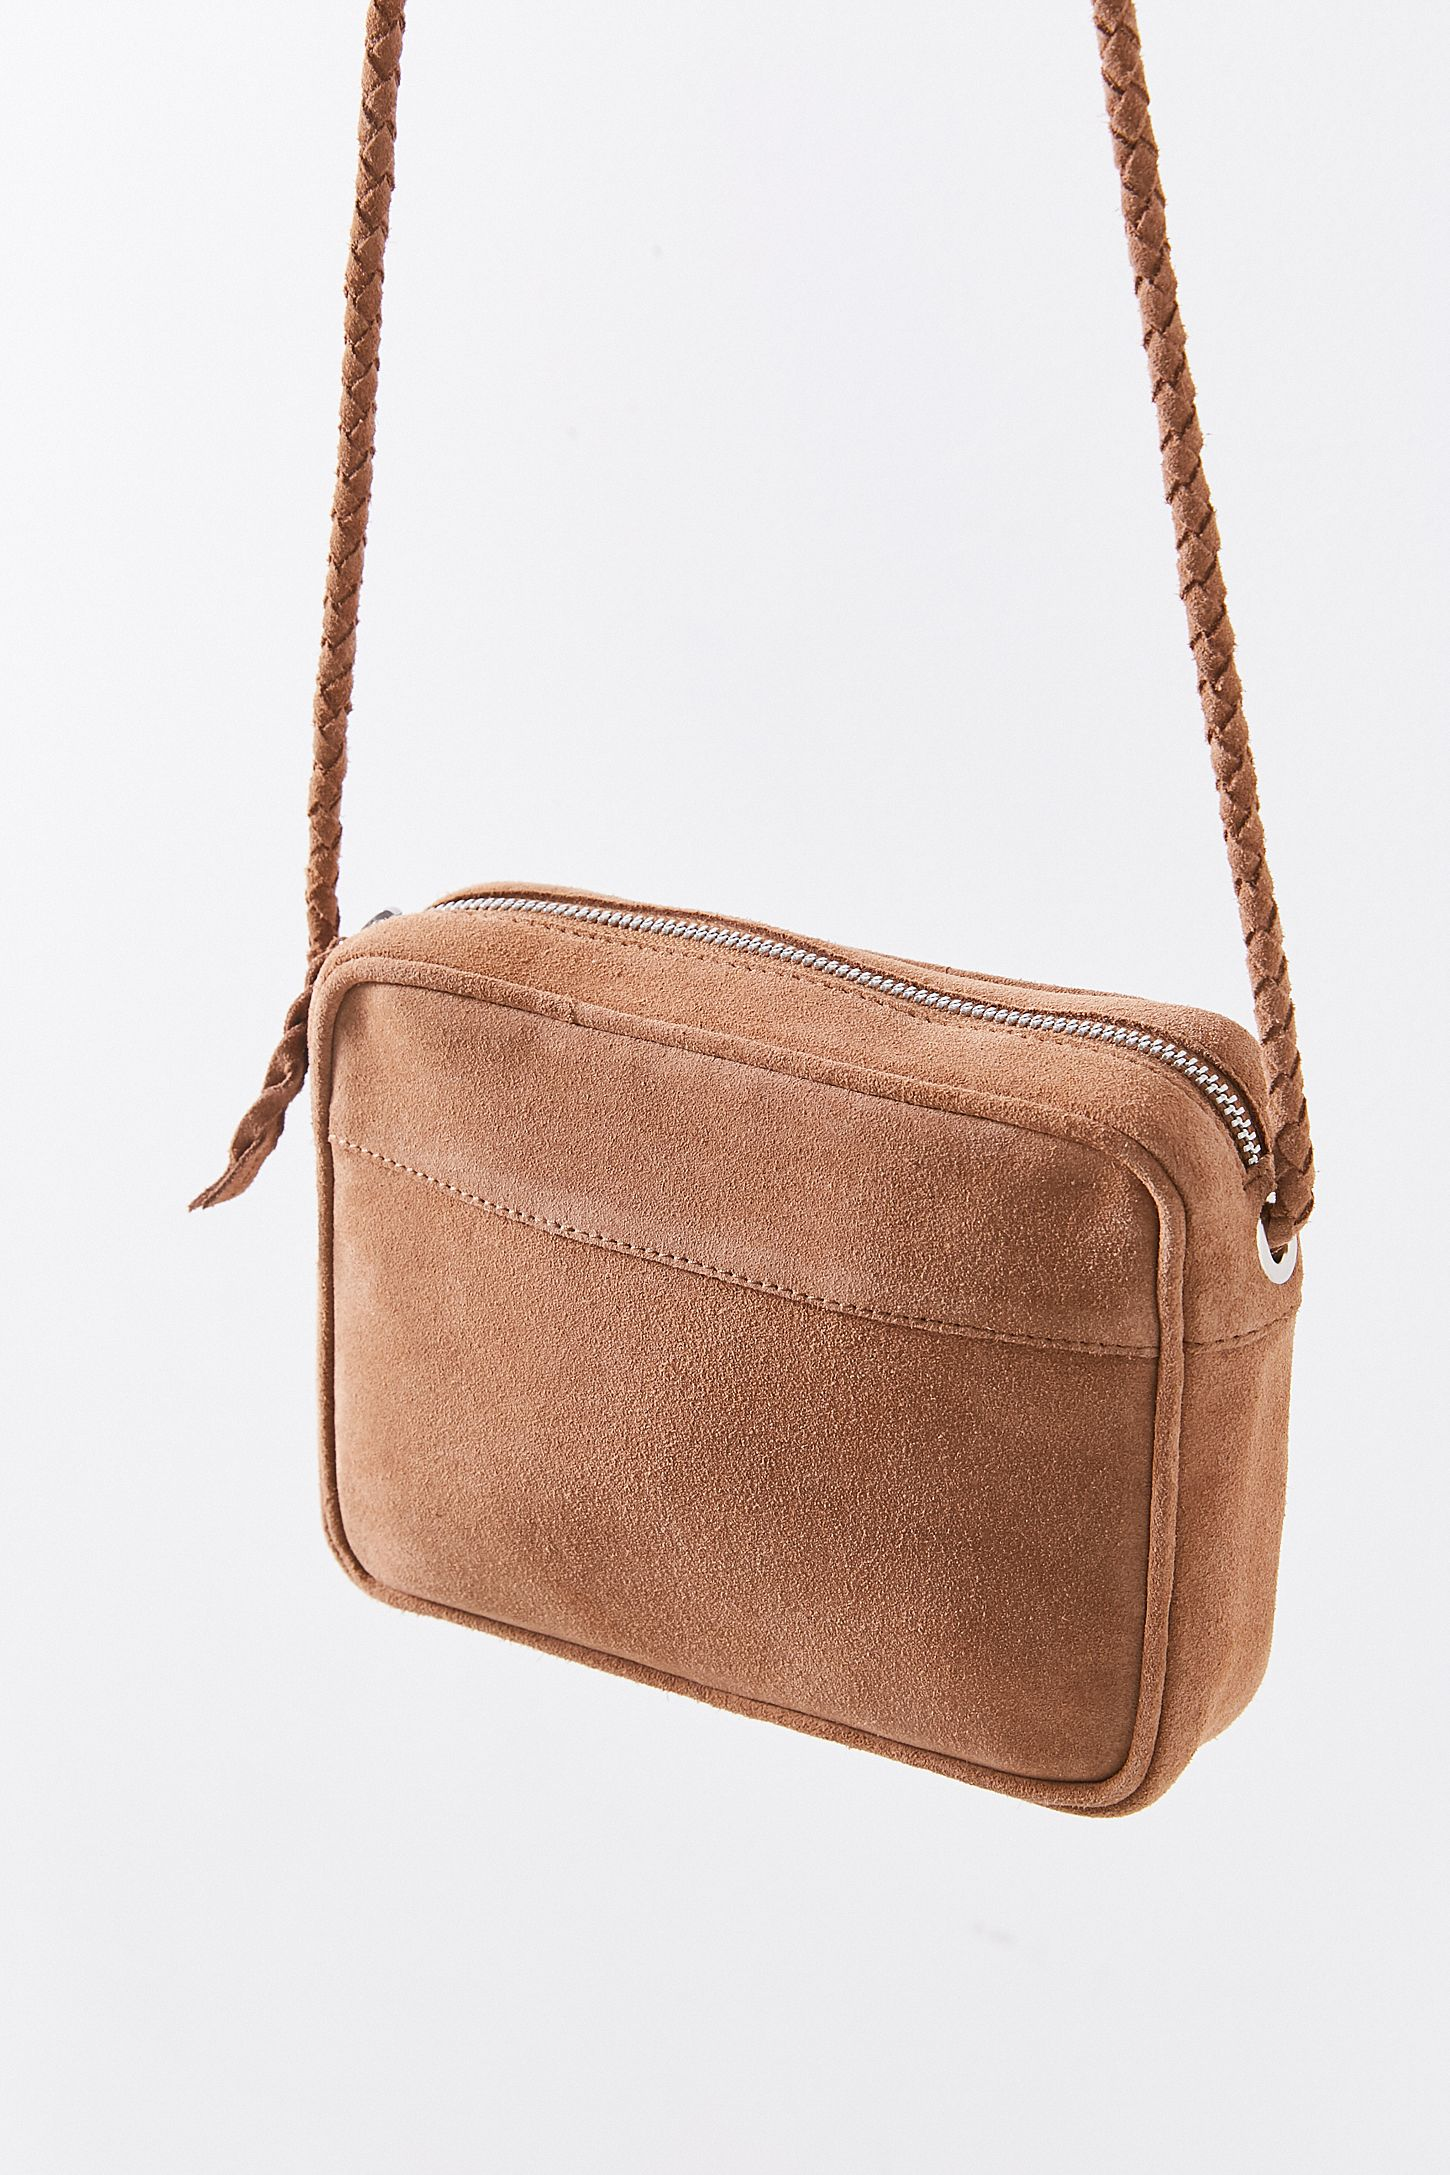 Lovely June Suede Crossbody Bag | Urban Outfitters LX24